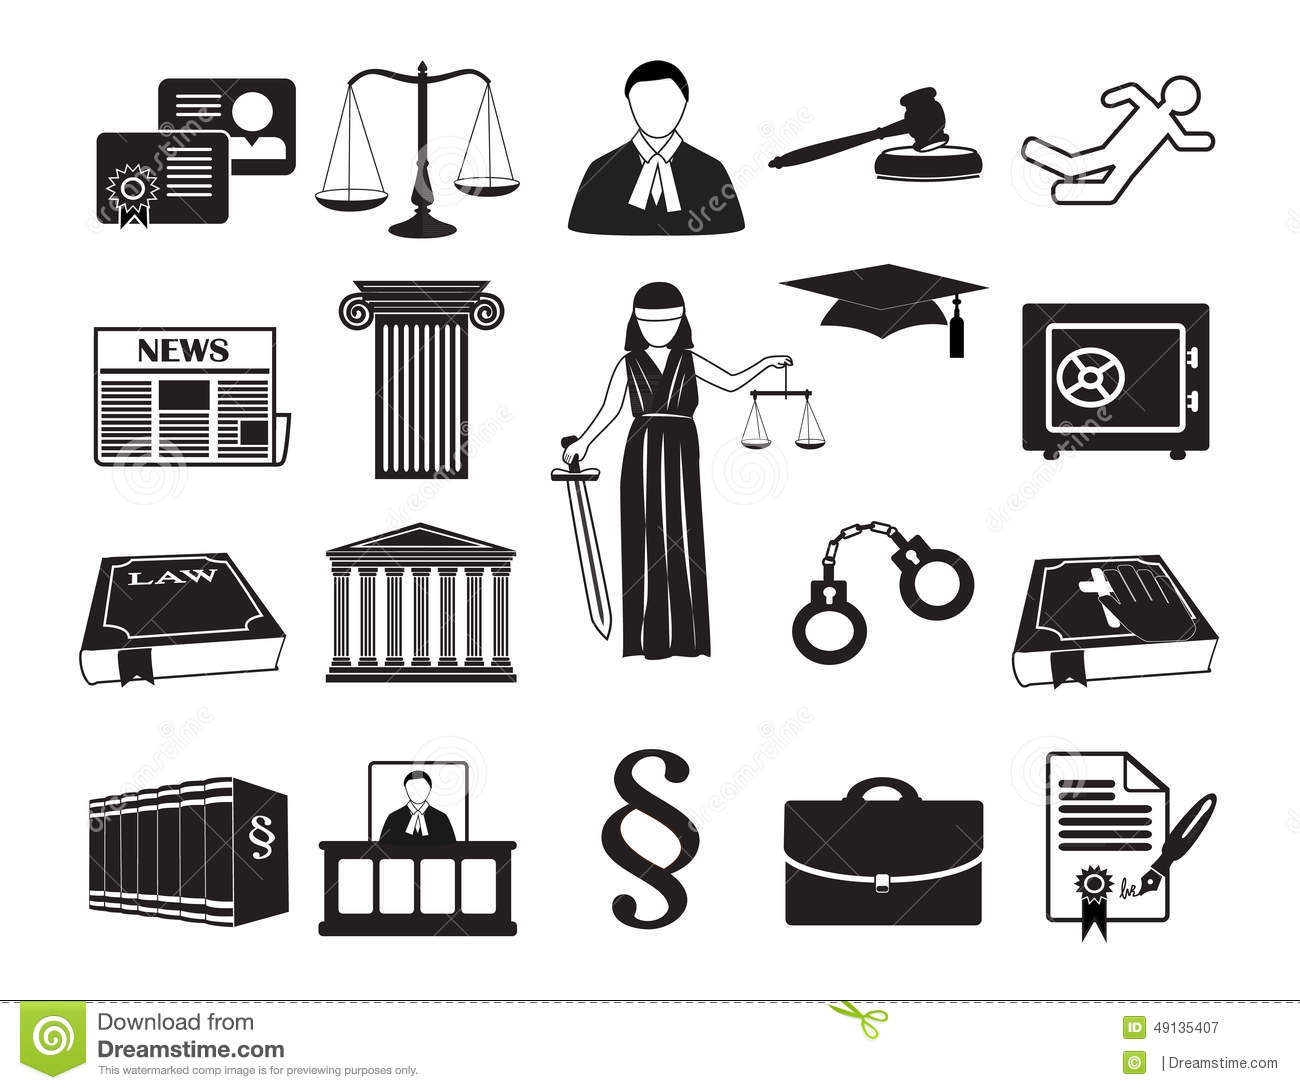 lawyer vector - photo #12